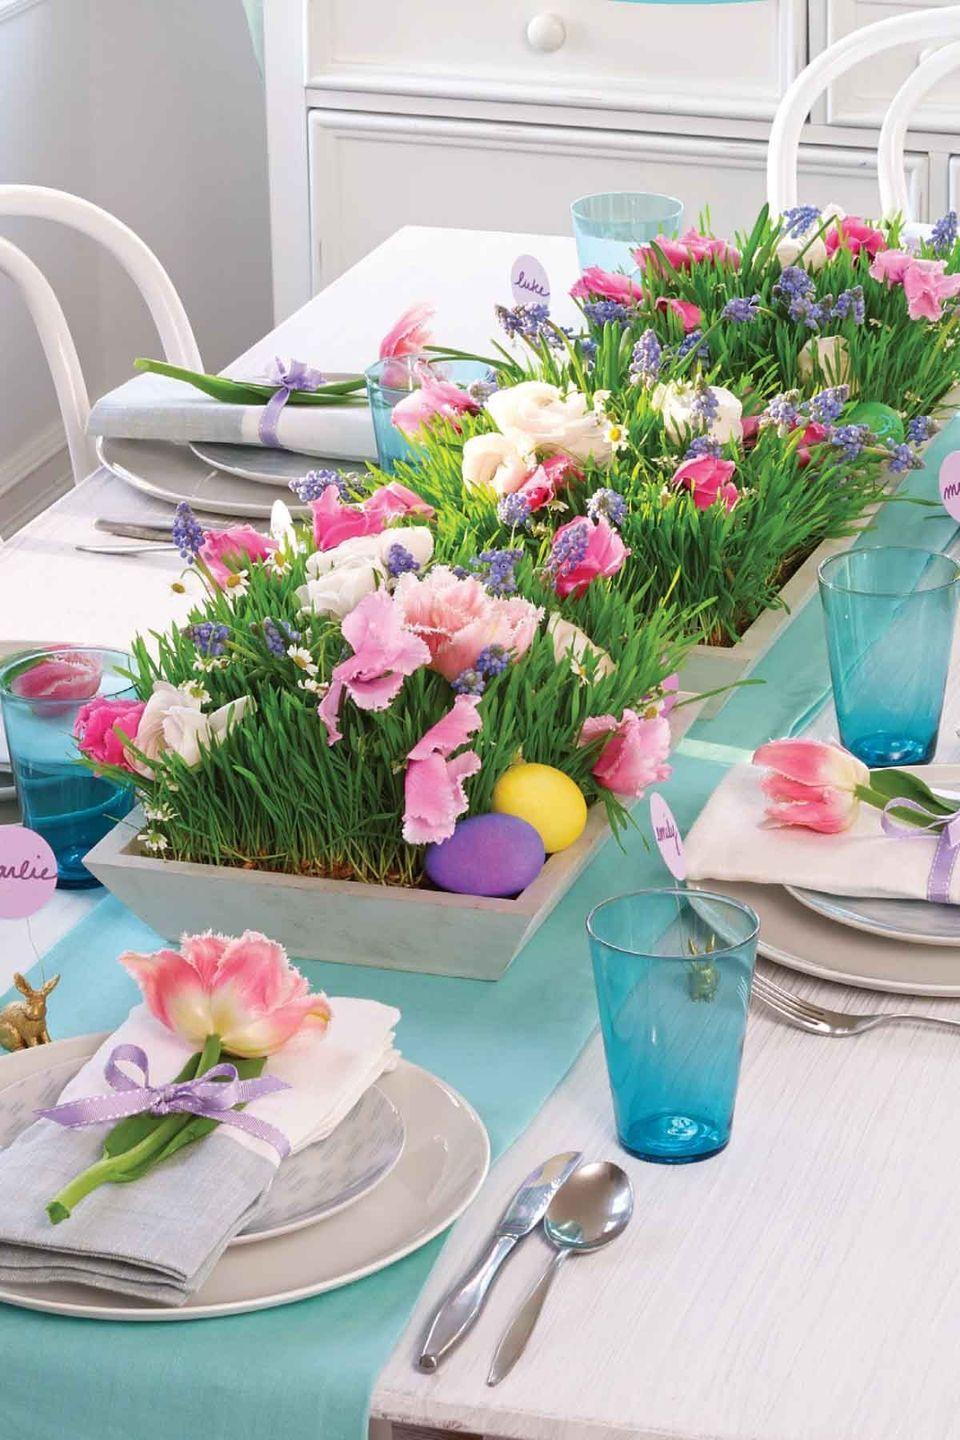 """<p><strong>1.</strong> Arrange medium whitewashed wood trays down the middle of your table. Cut through wheatgrass (available at most nurseries) with scissors so it fits inside each tray.</p><p><strong>2.</strong> Push the stems of cut flowers into floral water picks filled with tap water, then nestle the plastic tubes into the grass.</p><p><strong>3.</strong> For extra color, place a few dyed eggs around the perimeter as shown.</p><p><strong><a class=""""link rapid-noclick-resp"""" href=""""https://www.amazon.com/Floral-Water-Tubes-Florist-Supplies/dp/B073VPC5HL?tag=syn-yahoo-20&ascsubtag=%5Bartid%7C10070.g.1751%5Bsrc%7Cyahoo-us"""" rel=""""nofollow noopener"""" target=""""_blank"""" data-ylk=""""slk:SHOP FLORAL WATER PICKS"""">SHOP FLORAL WATER PICKS</a></strong></p>"""